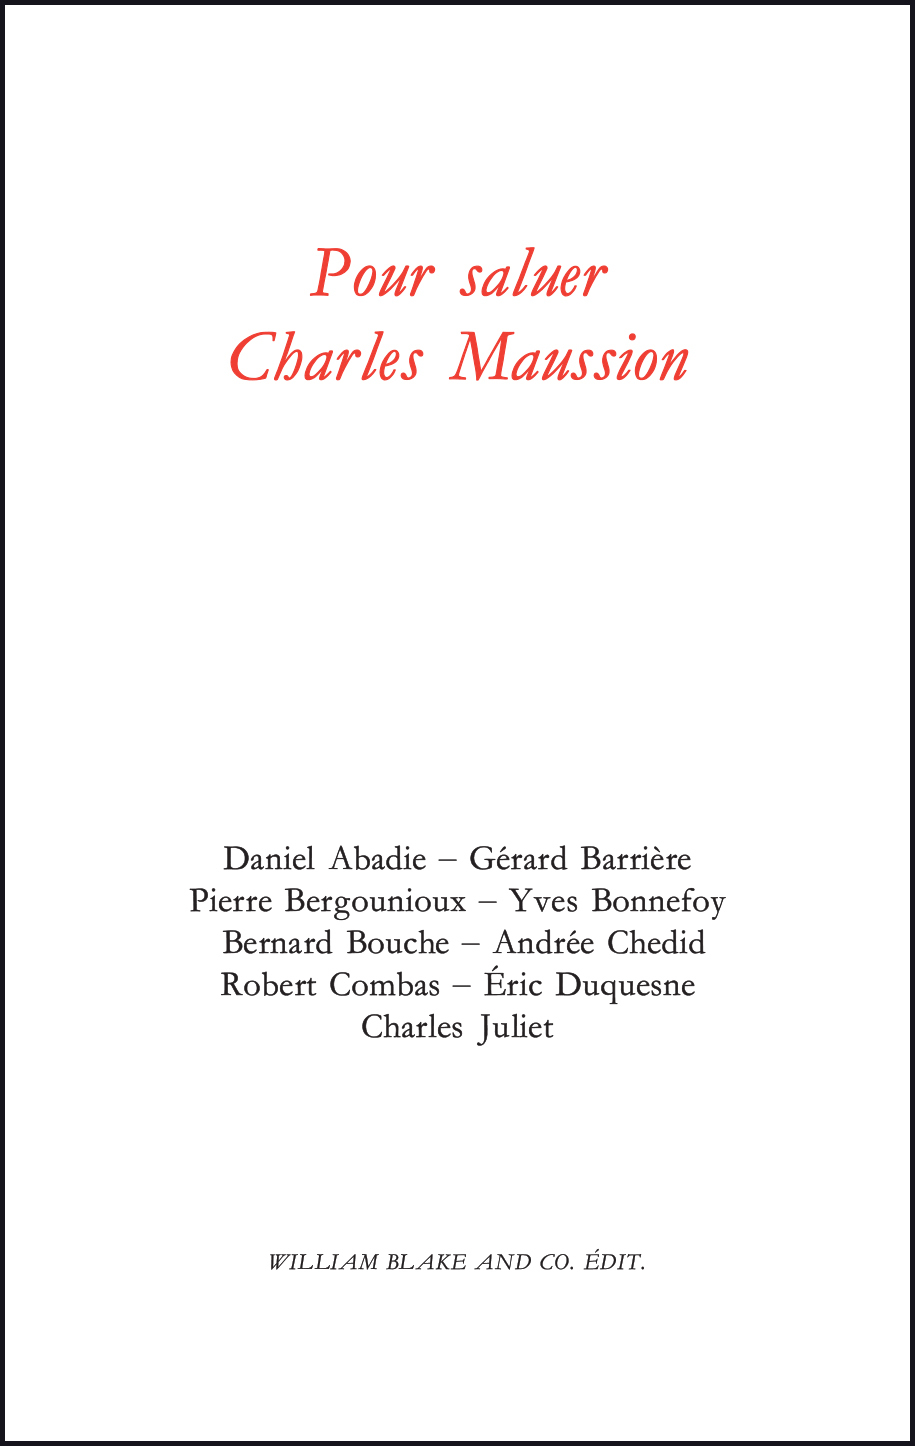 POUR SALUER CHARLES MAUSSION